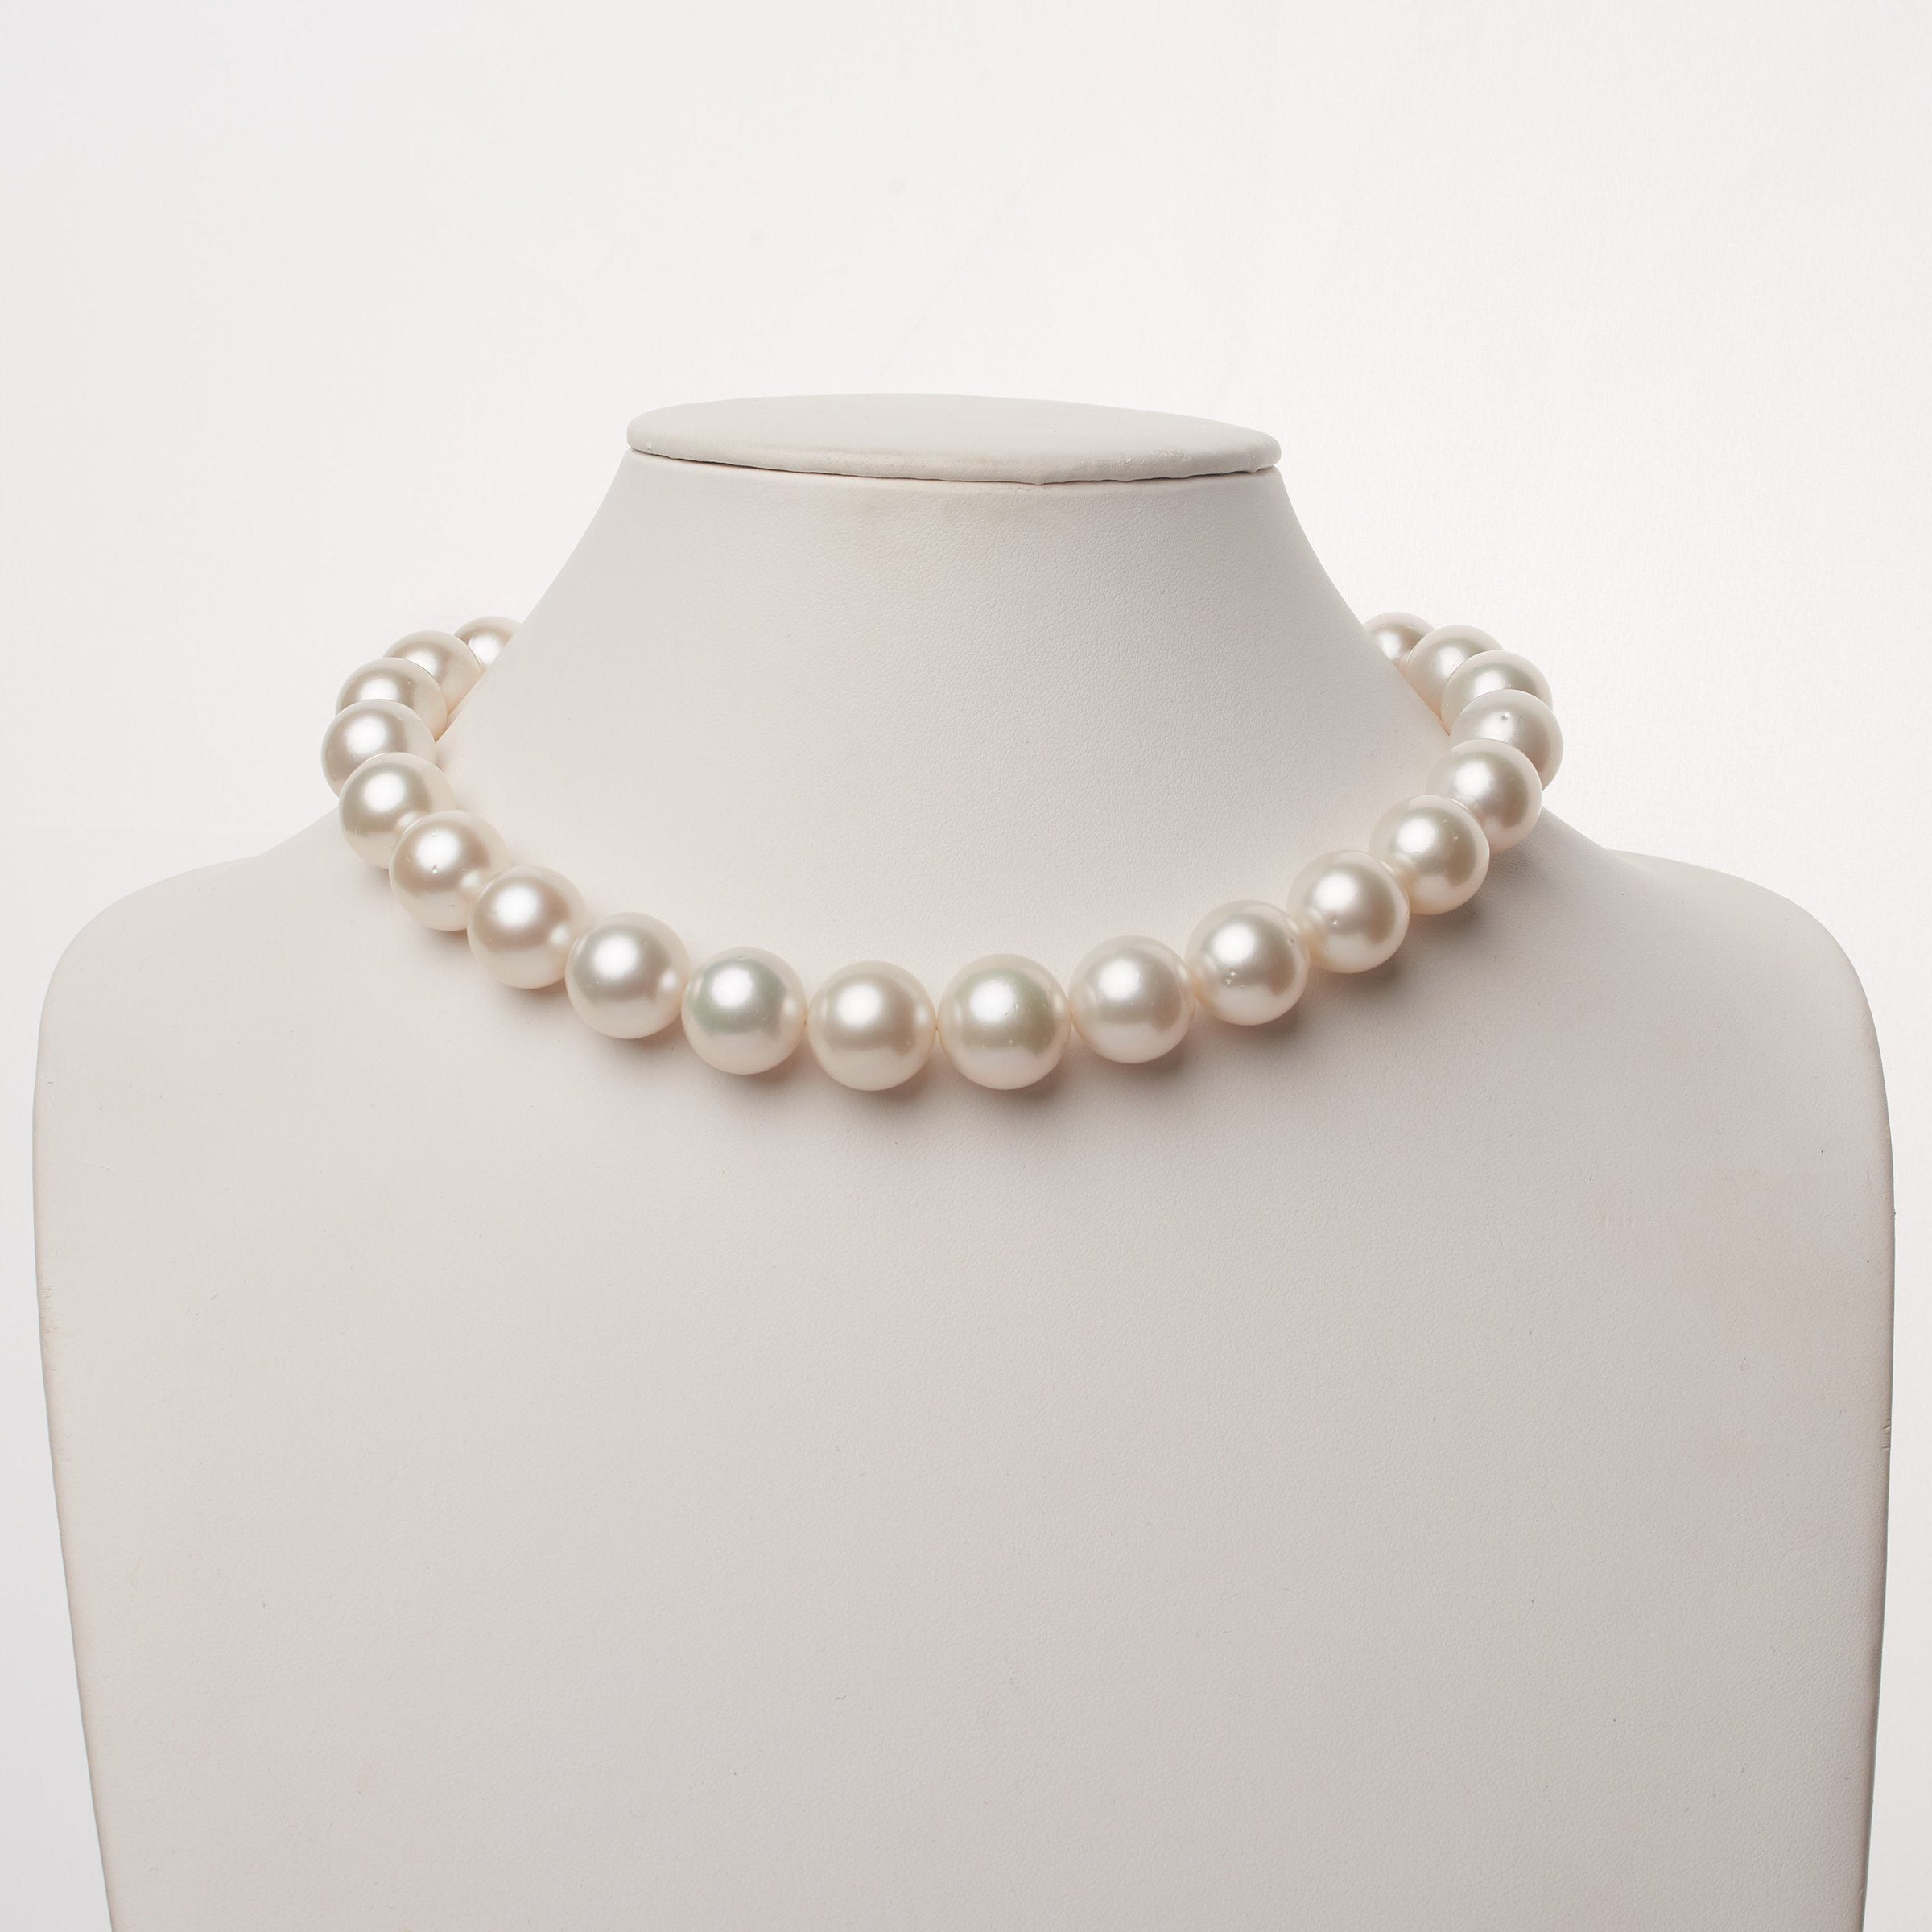 The Chopin White South Sea Pearl Necklace